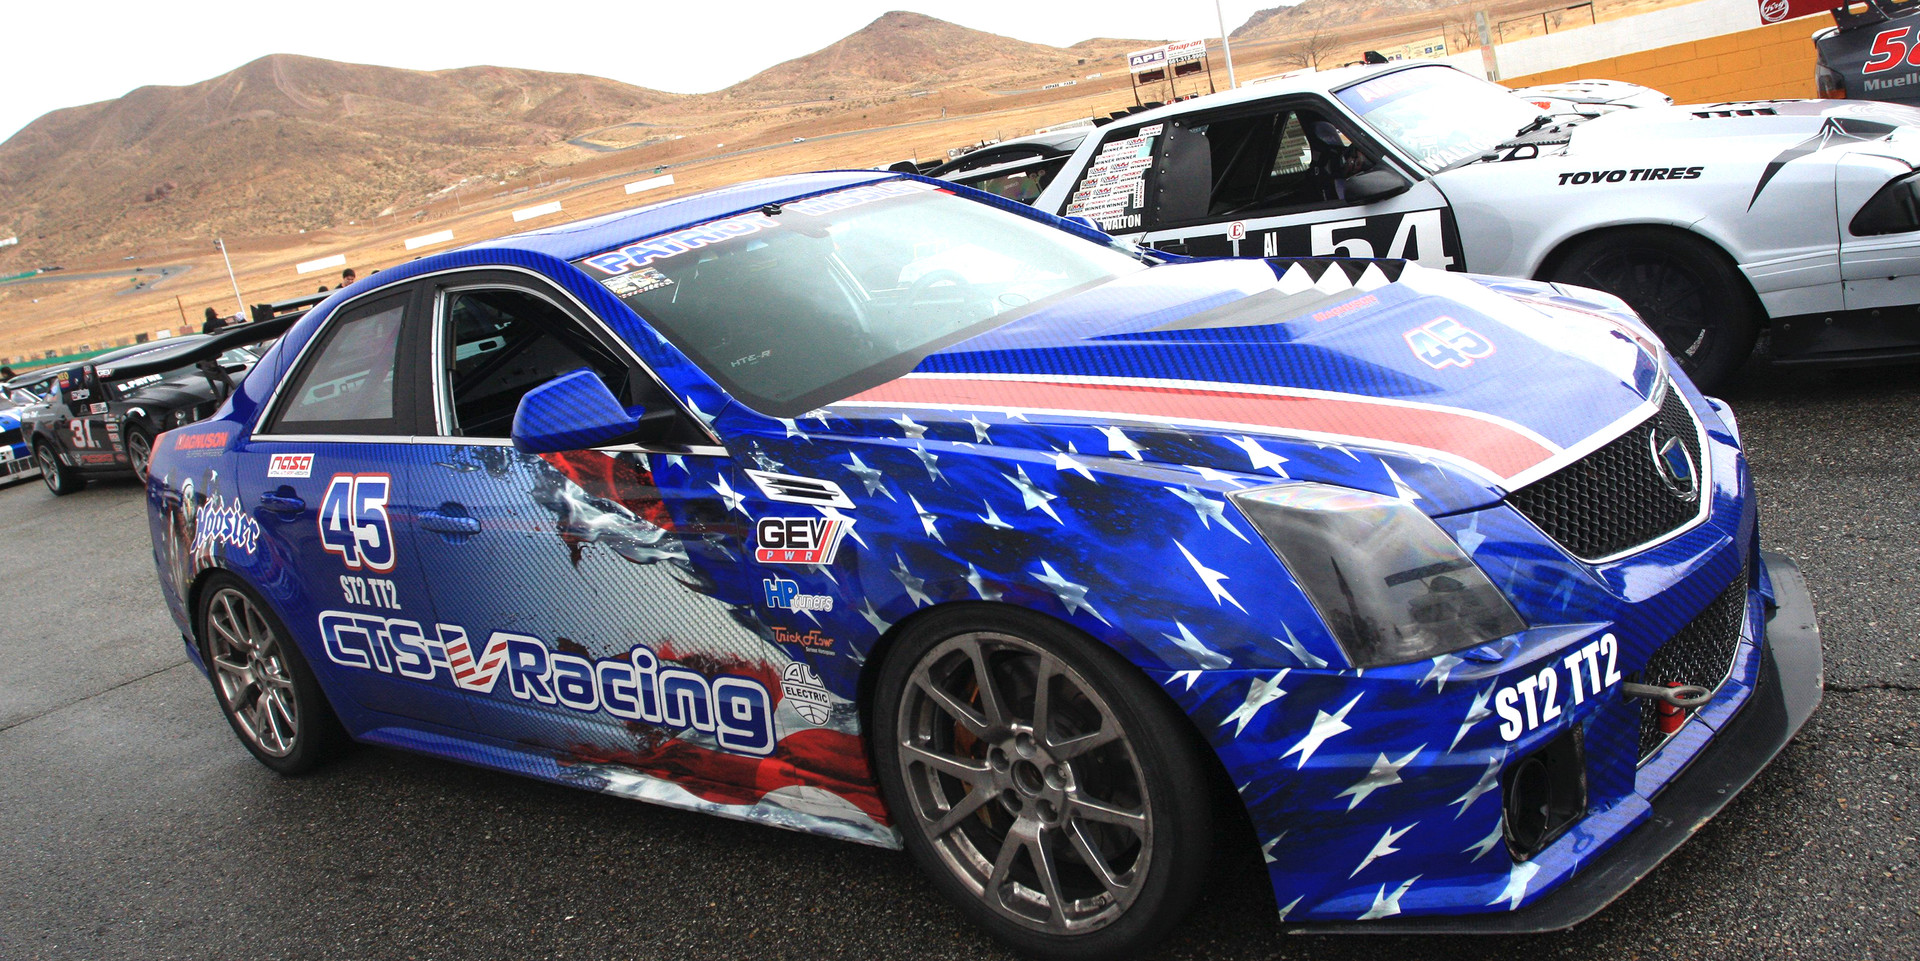 The Patriot Missile takes 2nd Place at Willow Springs with NASA SoCal (3-11-2018)